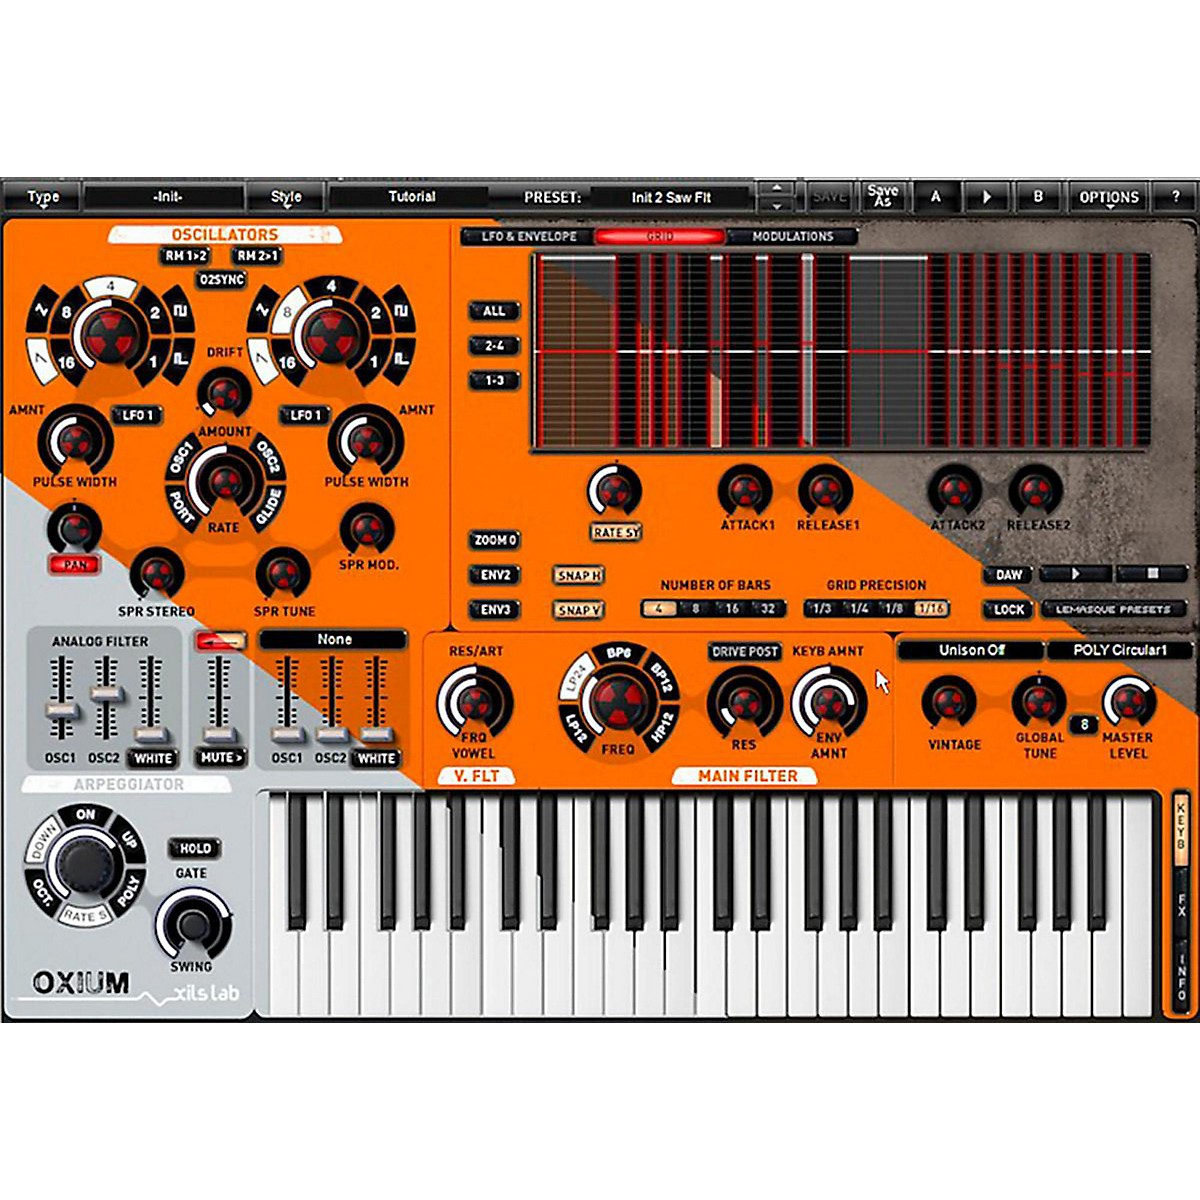 XILS lab Oxium Modern Synth Software Download